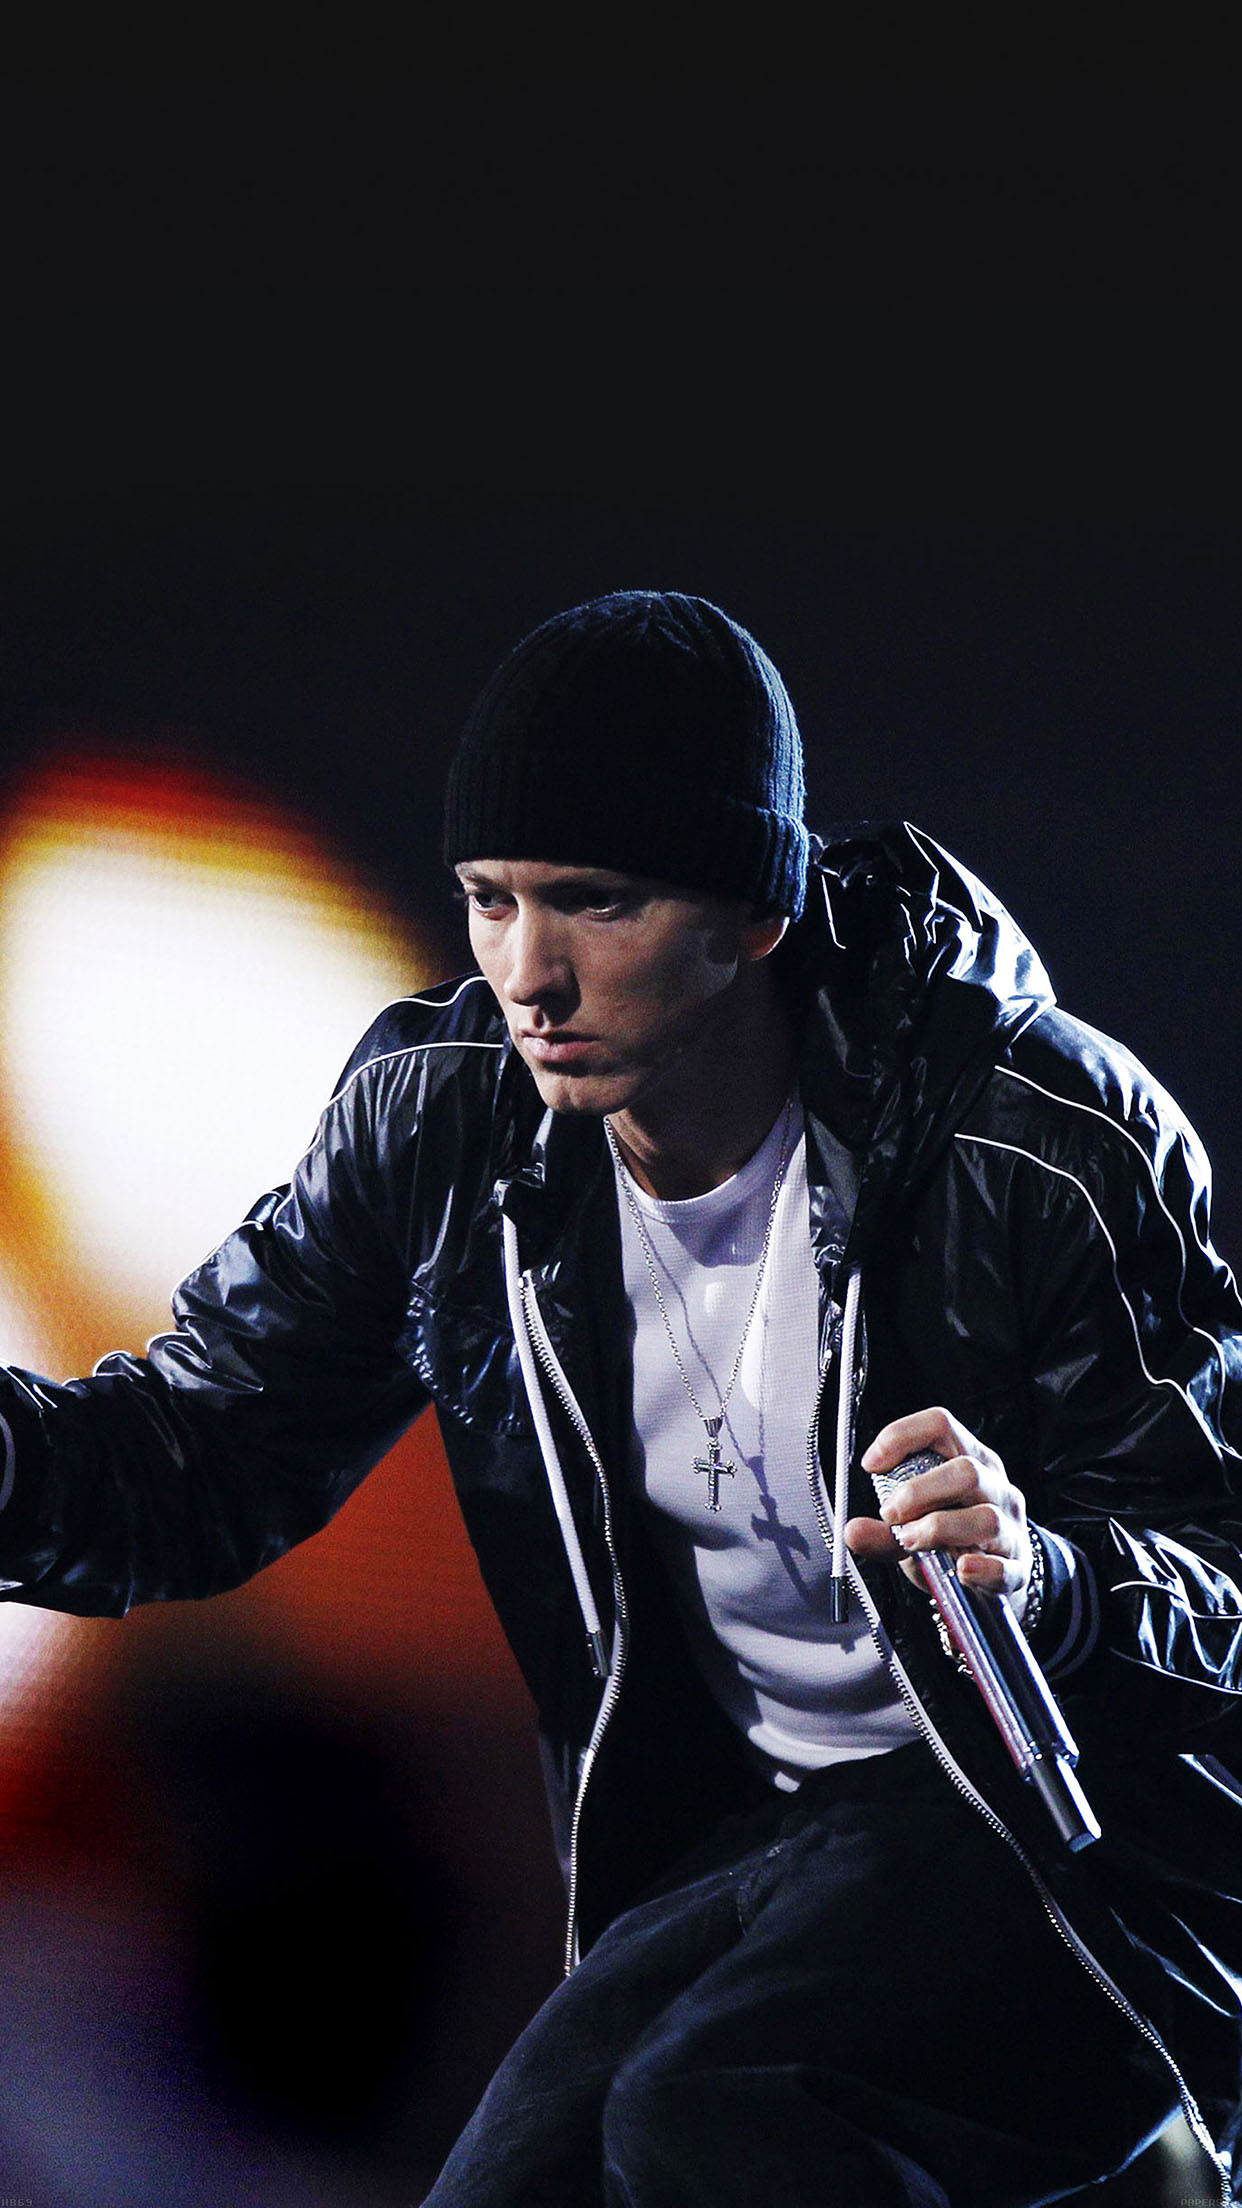 iphone7papers - hb69-eminem-in-concert